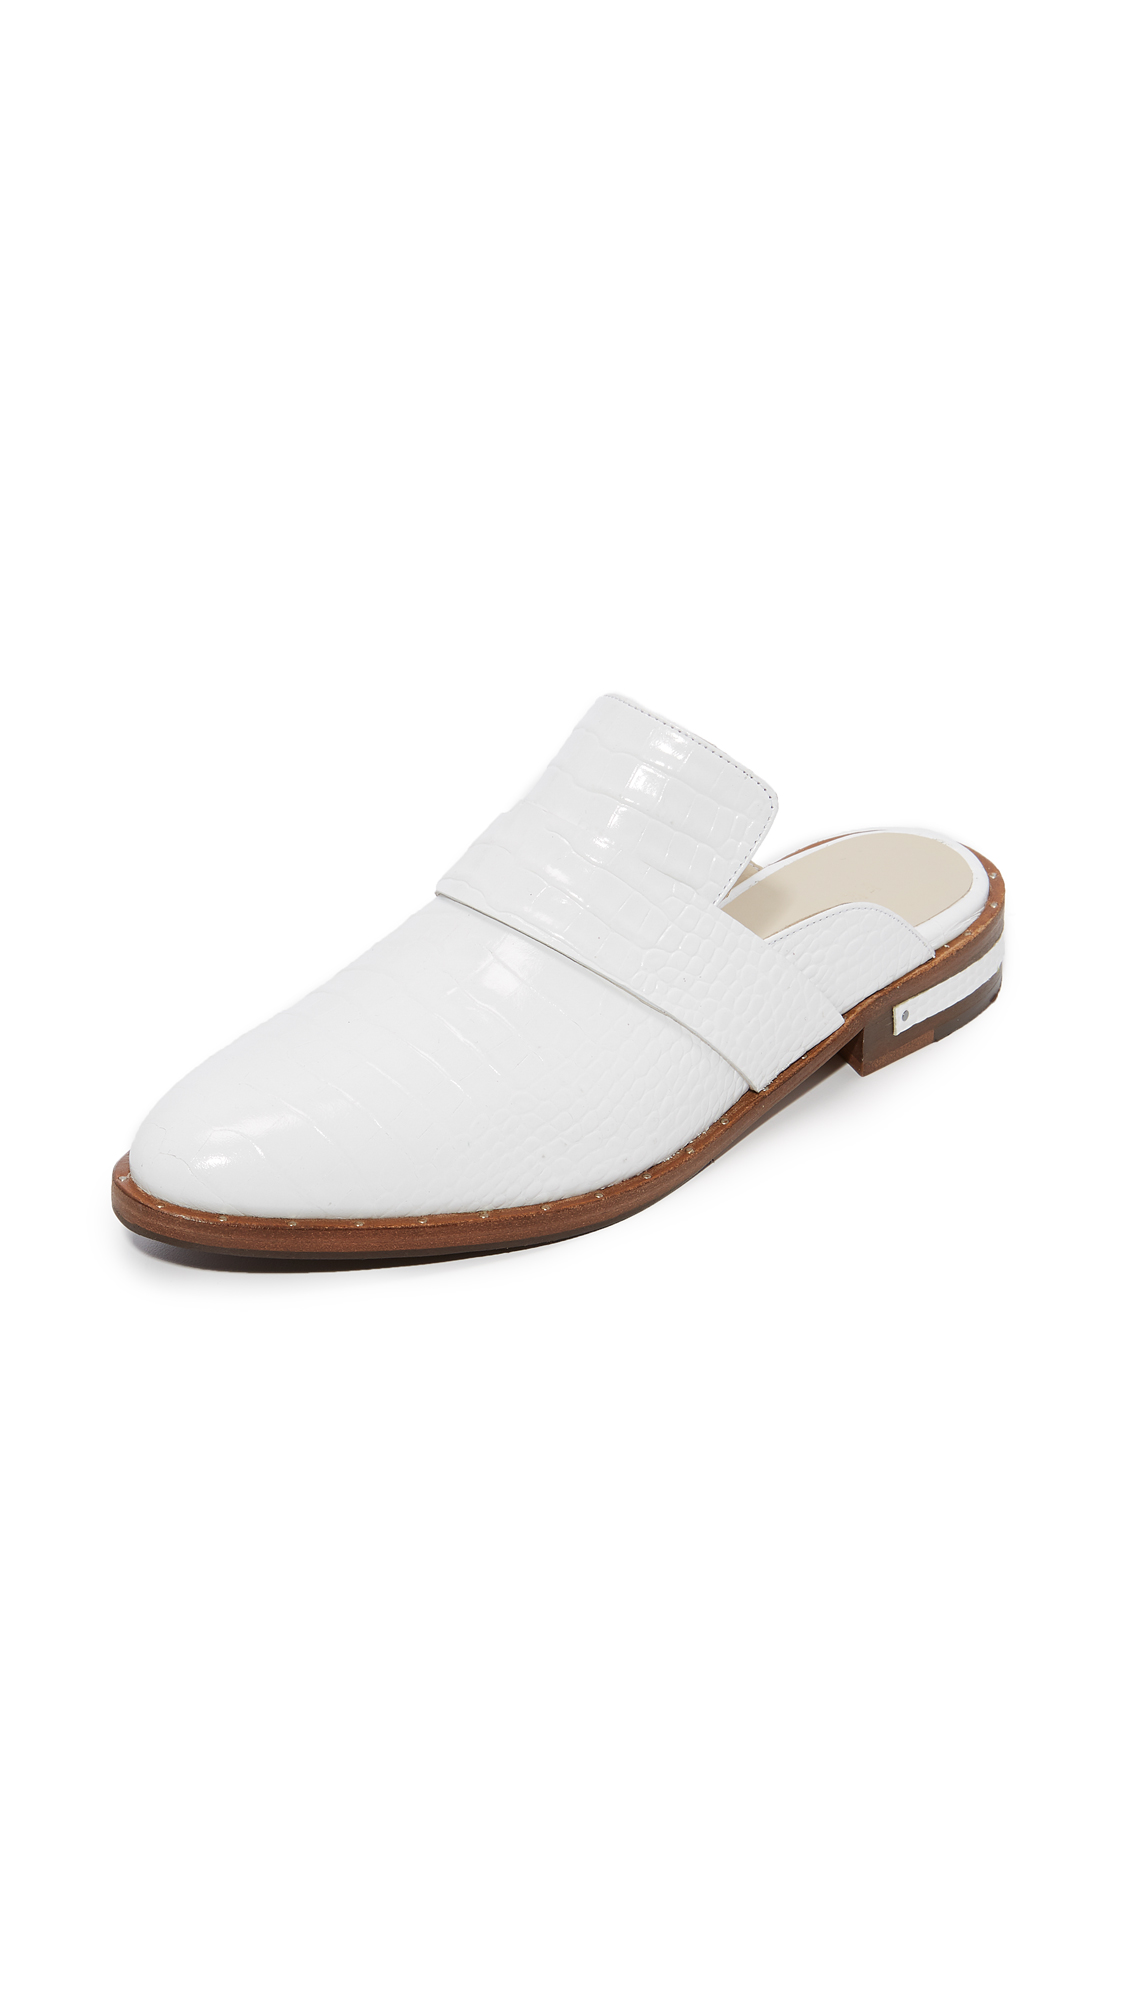 Freda Salvador Keen Mules - White